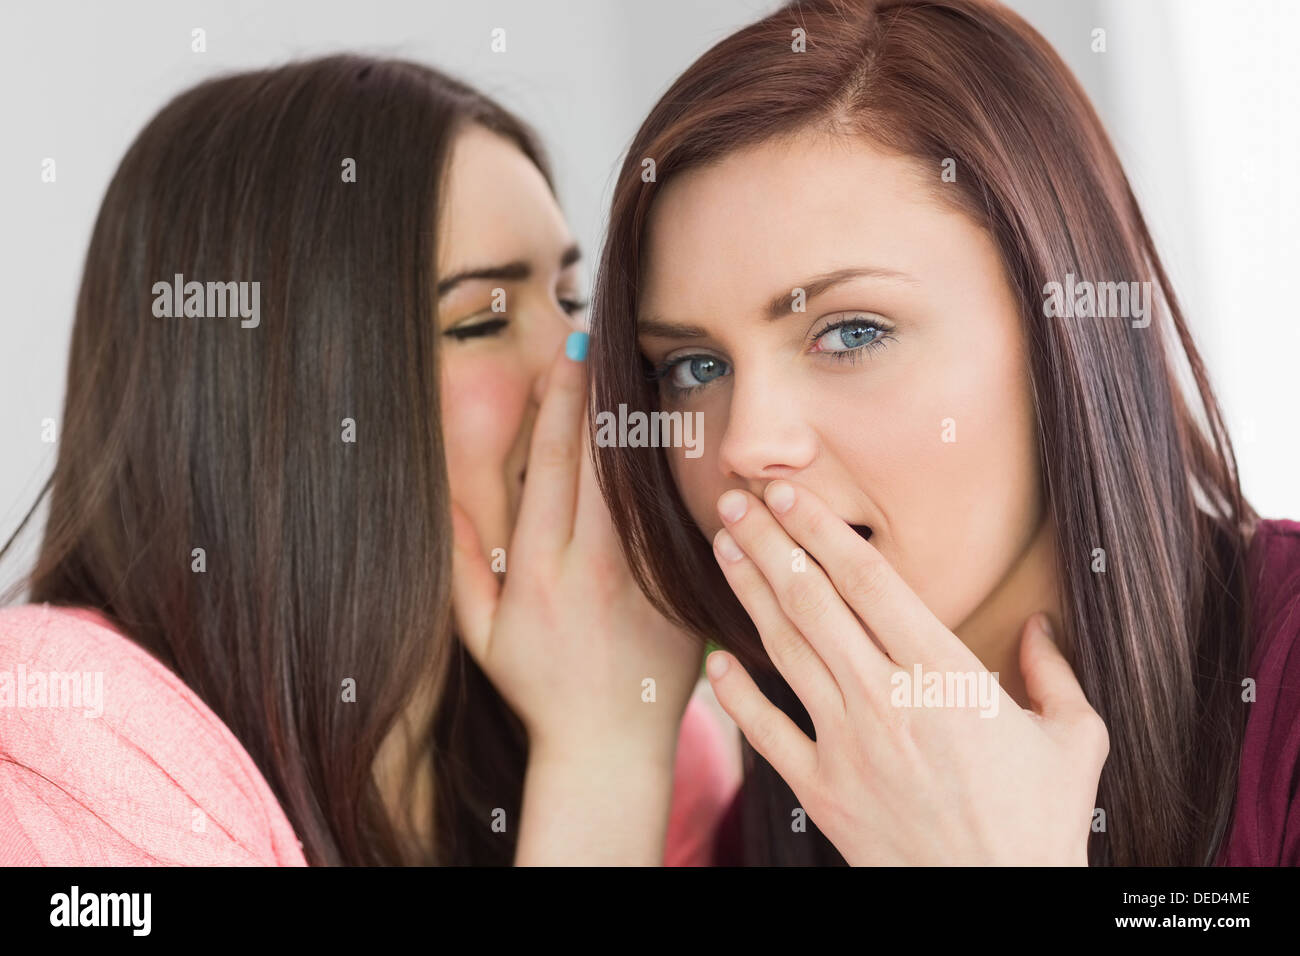 Two young girls sharing secrets - Stock Image